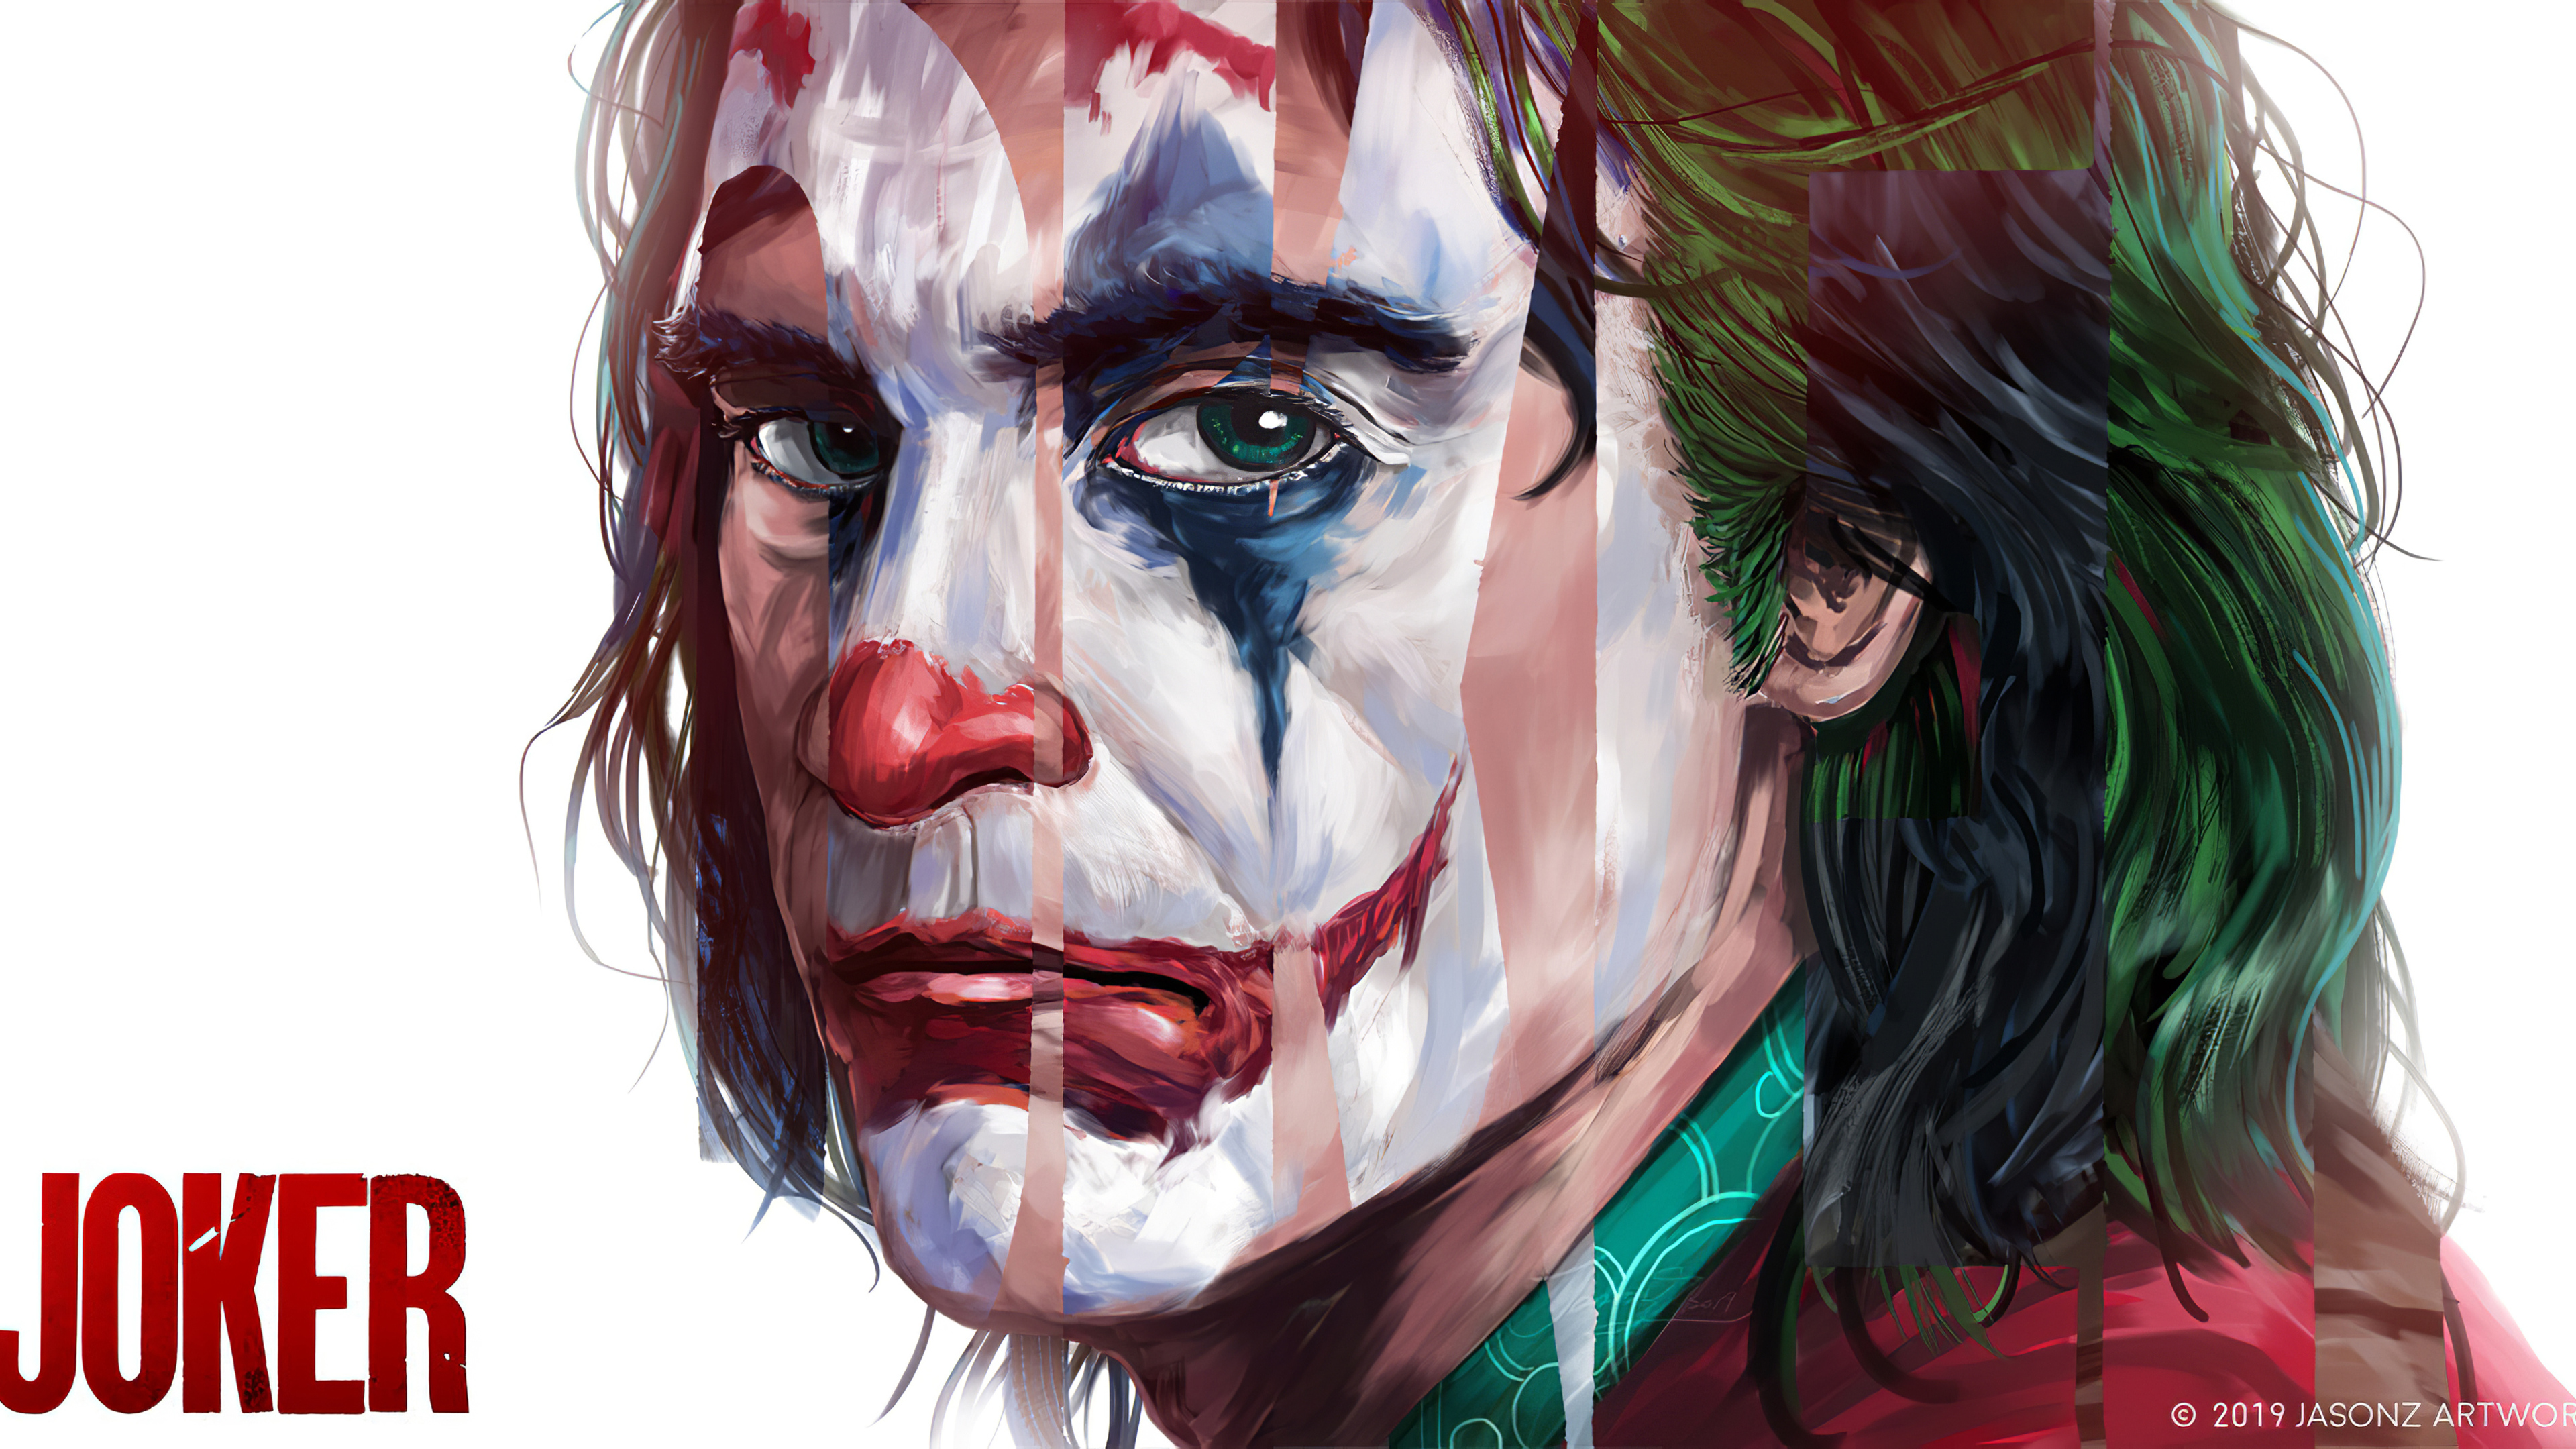 joker-paint-splash-art-4k-m8.jpg